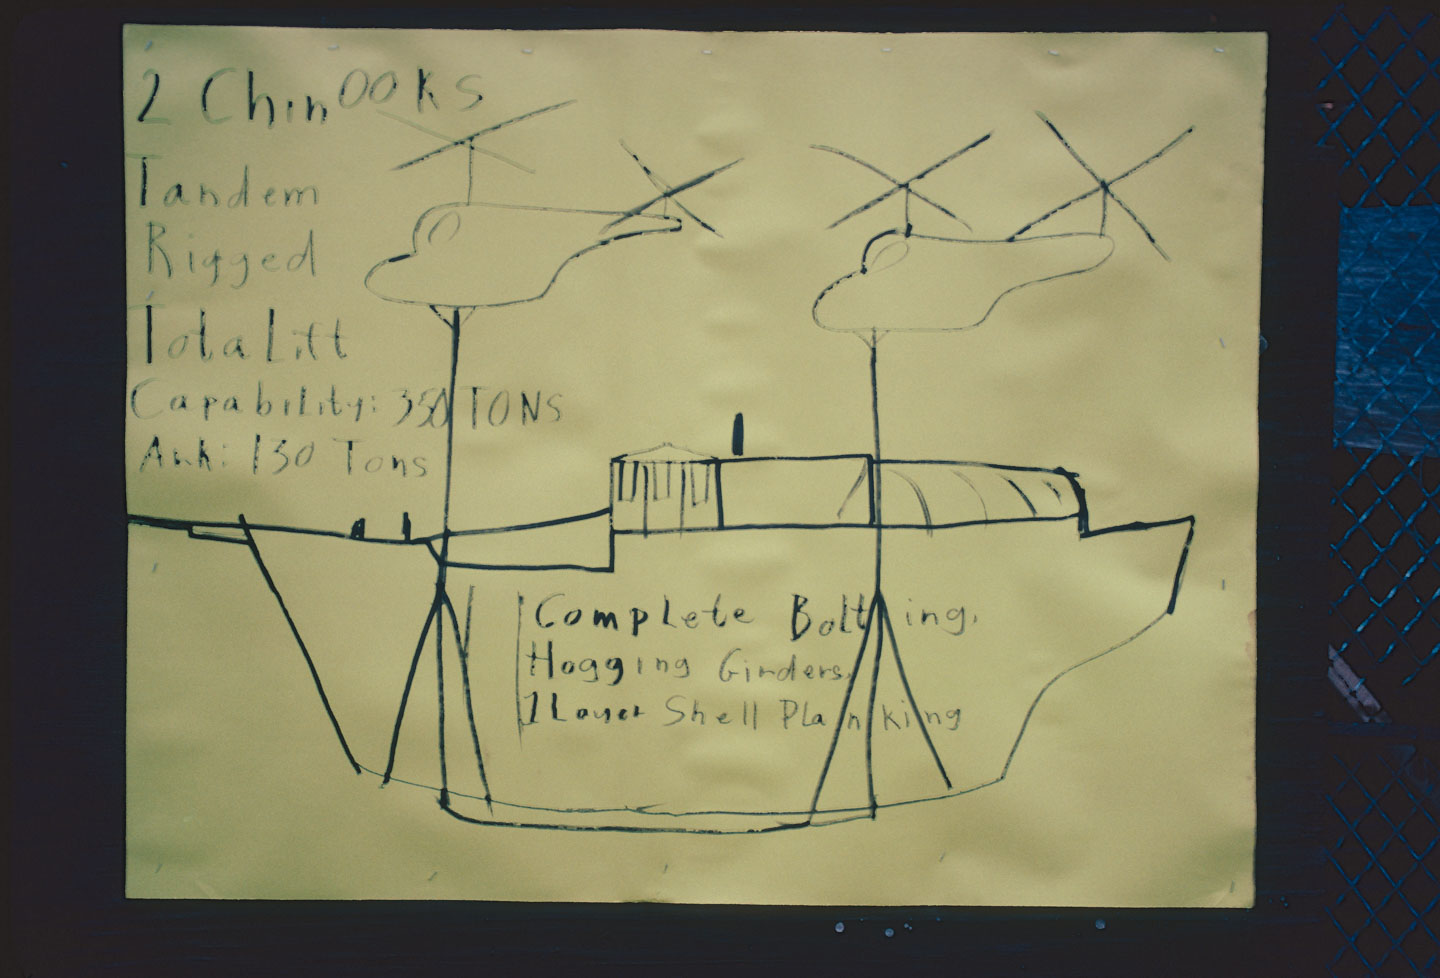 35-Drawing by Kea Tawana depicting how the ark could be transported from the Central Ward of Newark to the Ocean, Bergen St. at 14th Ave